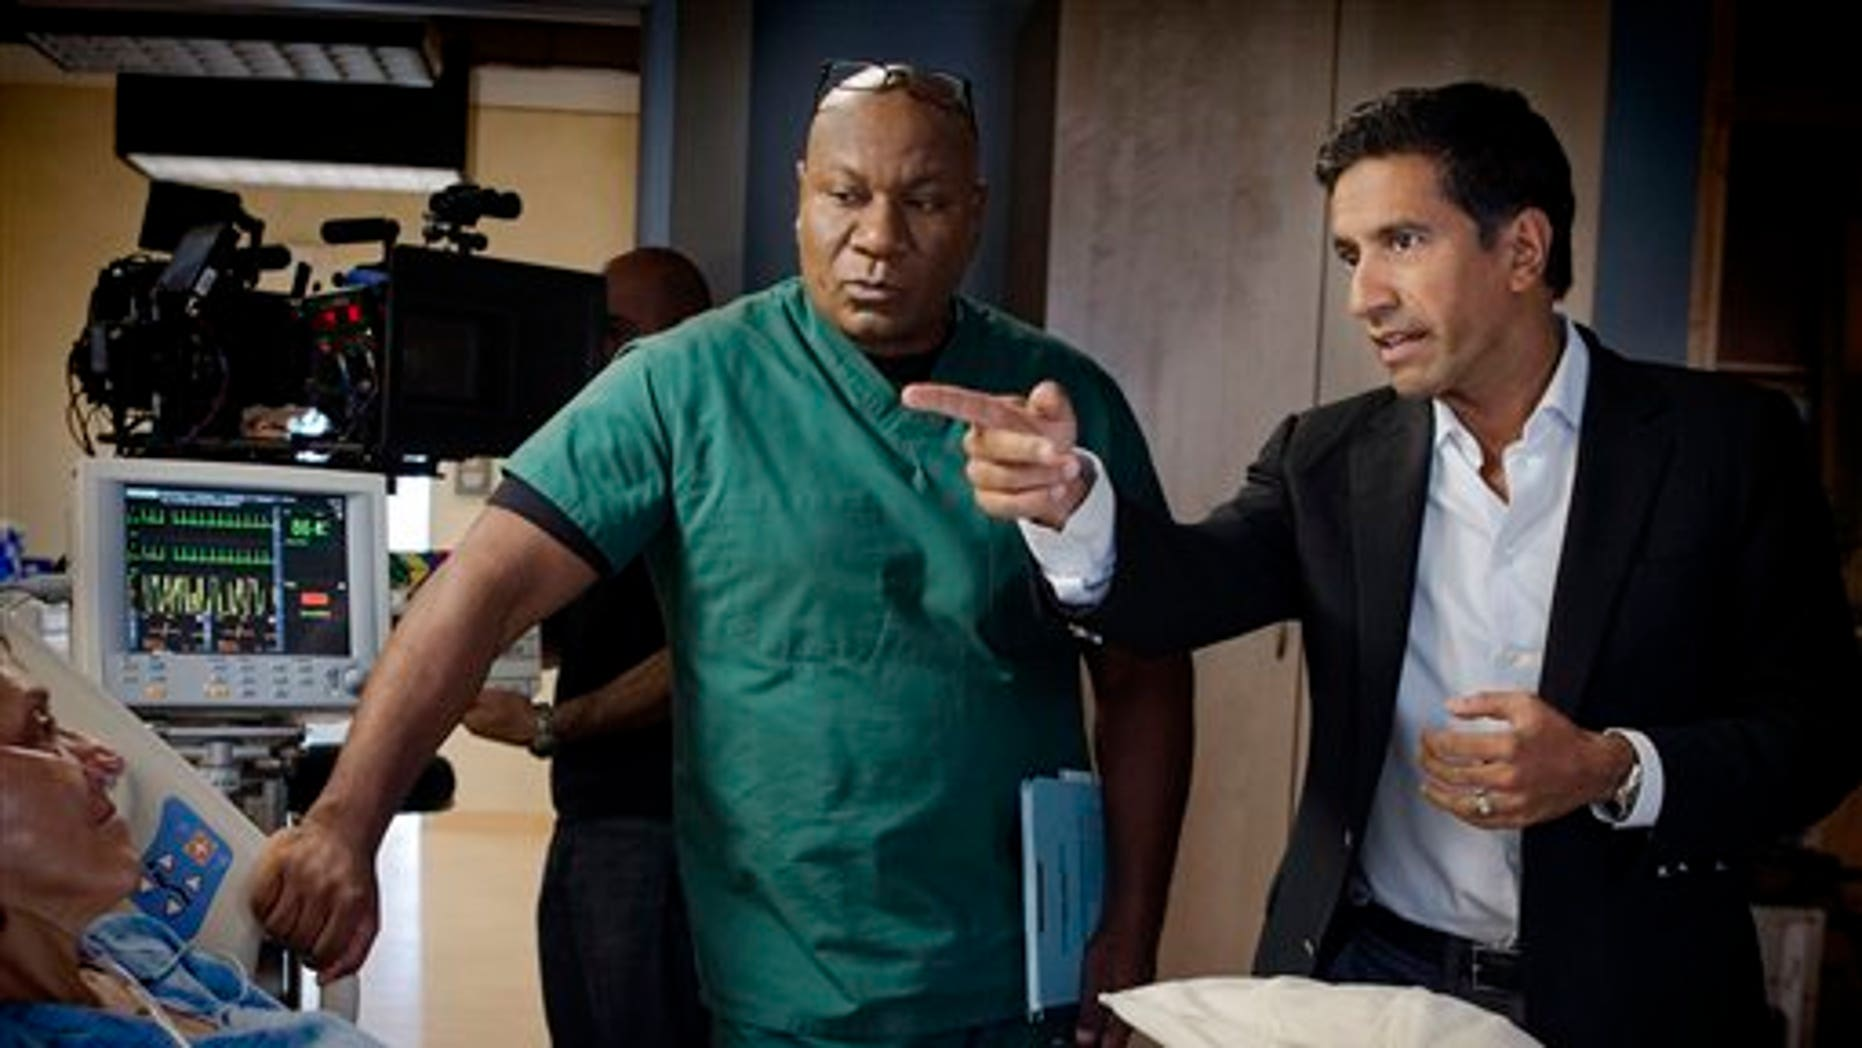 """This undated image released by TNT shows Ving Rhames portraying Dr. Jorge Villanueva, left, and Executive Producer Dr. Sanjay Gupta on the set of """"Monday Mornings"""" a medical drama premiering Monday, Feb. 4, 2013 at 10 p.m. EST on TNT."""